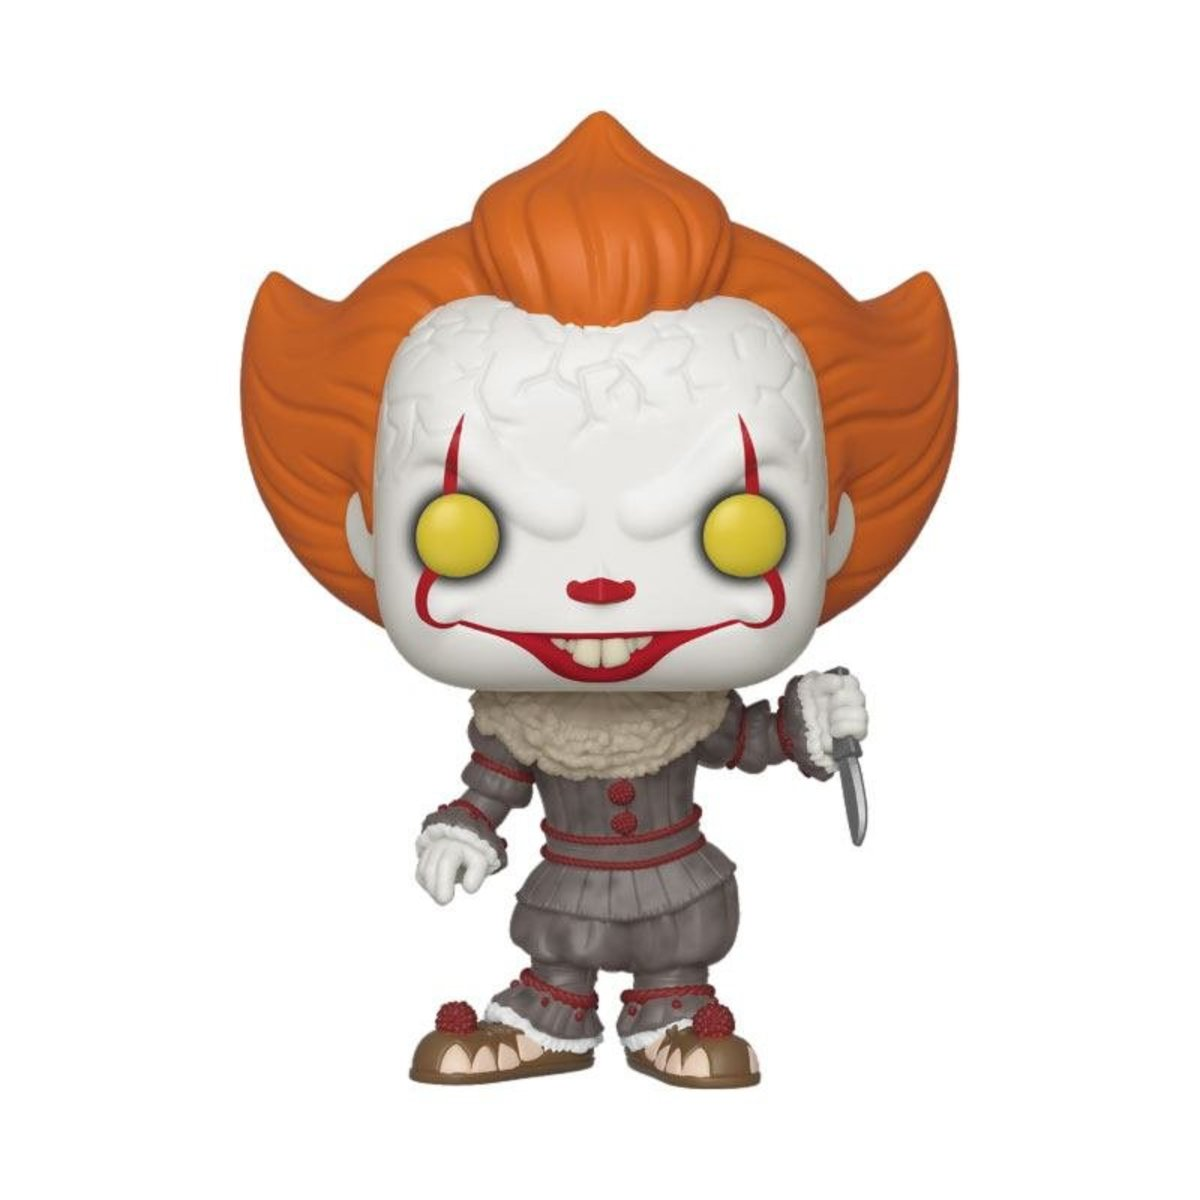 figurka TO 2 - Stephen King - POP! - Pennywise - Blade - FK40632